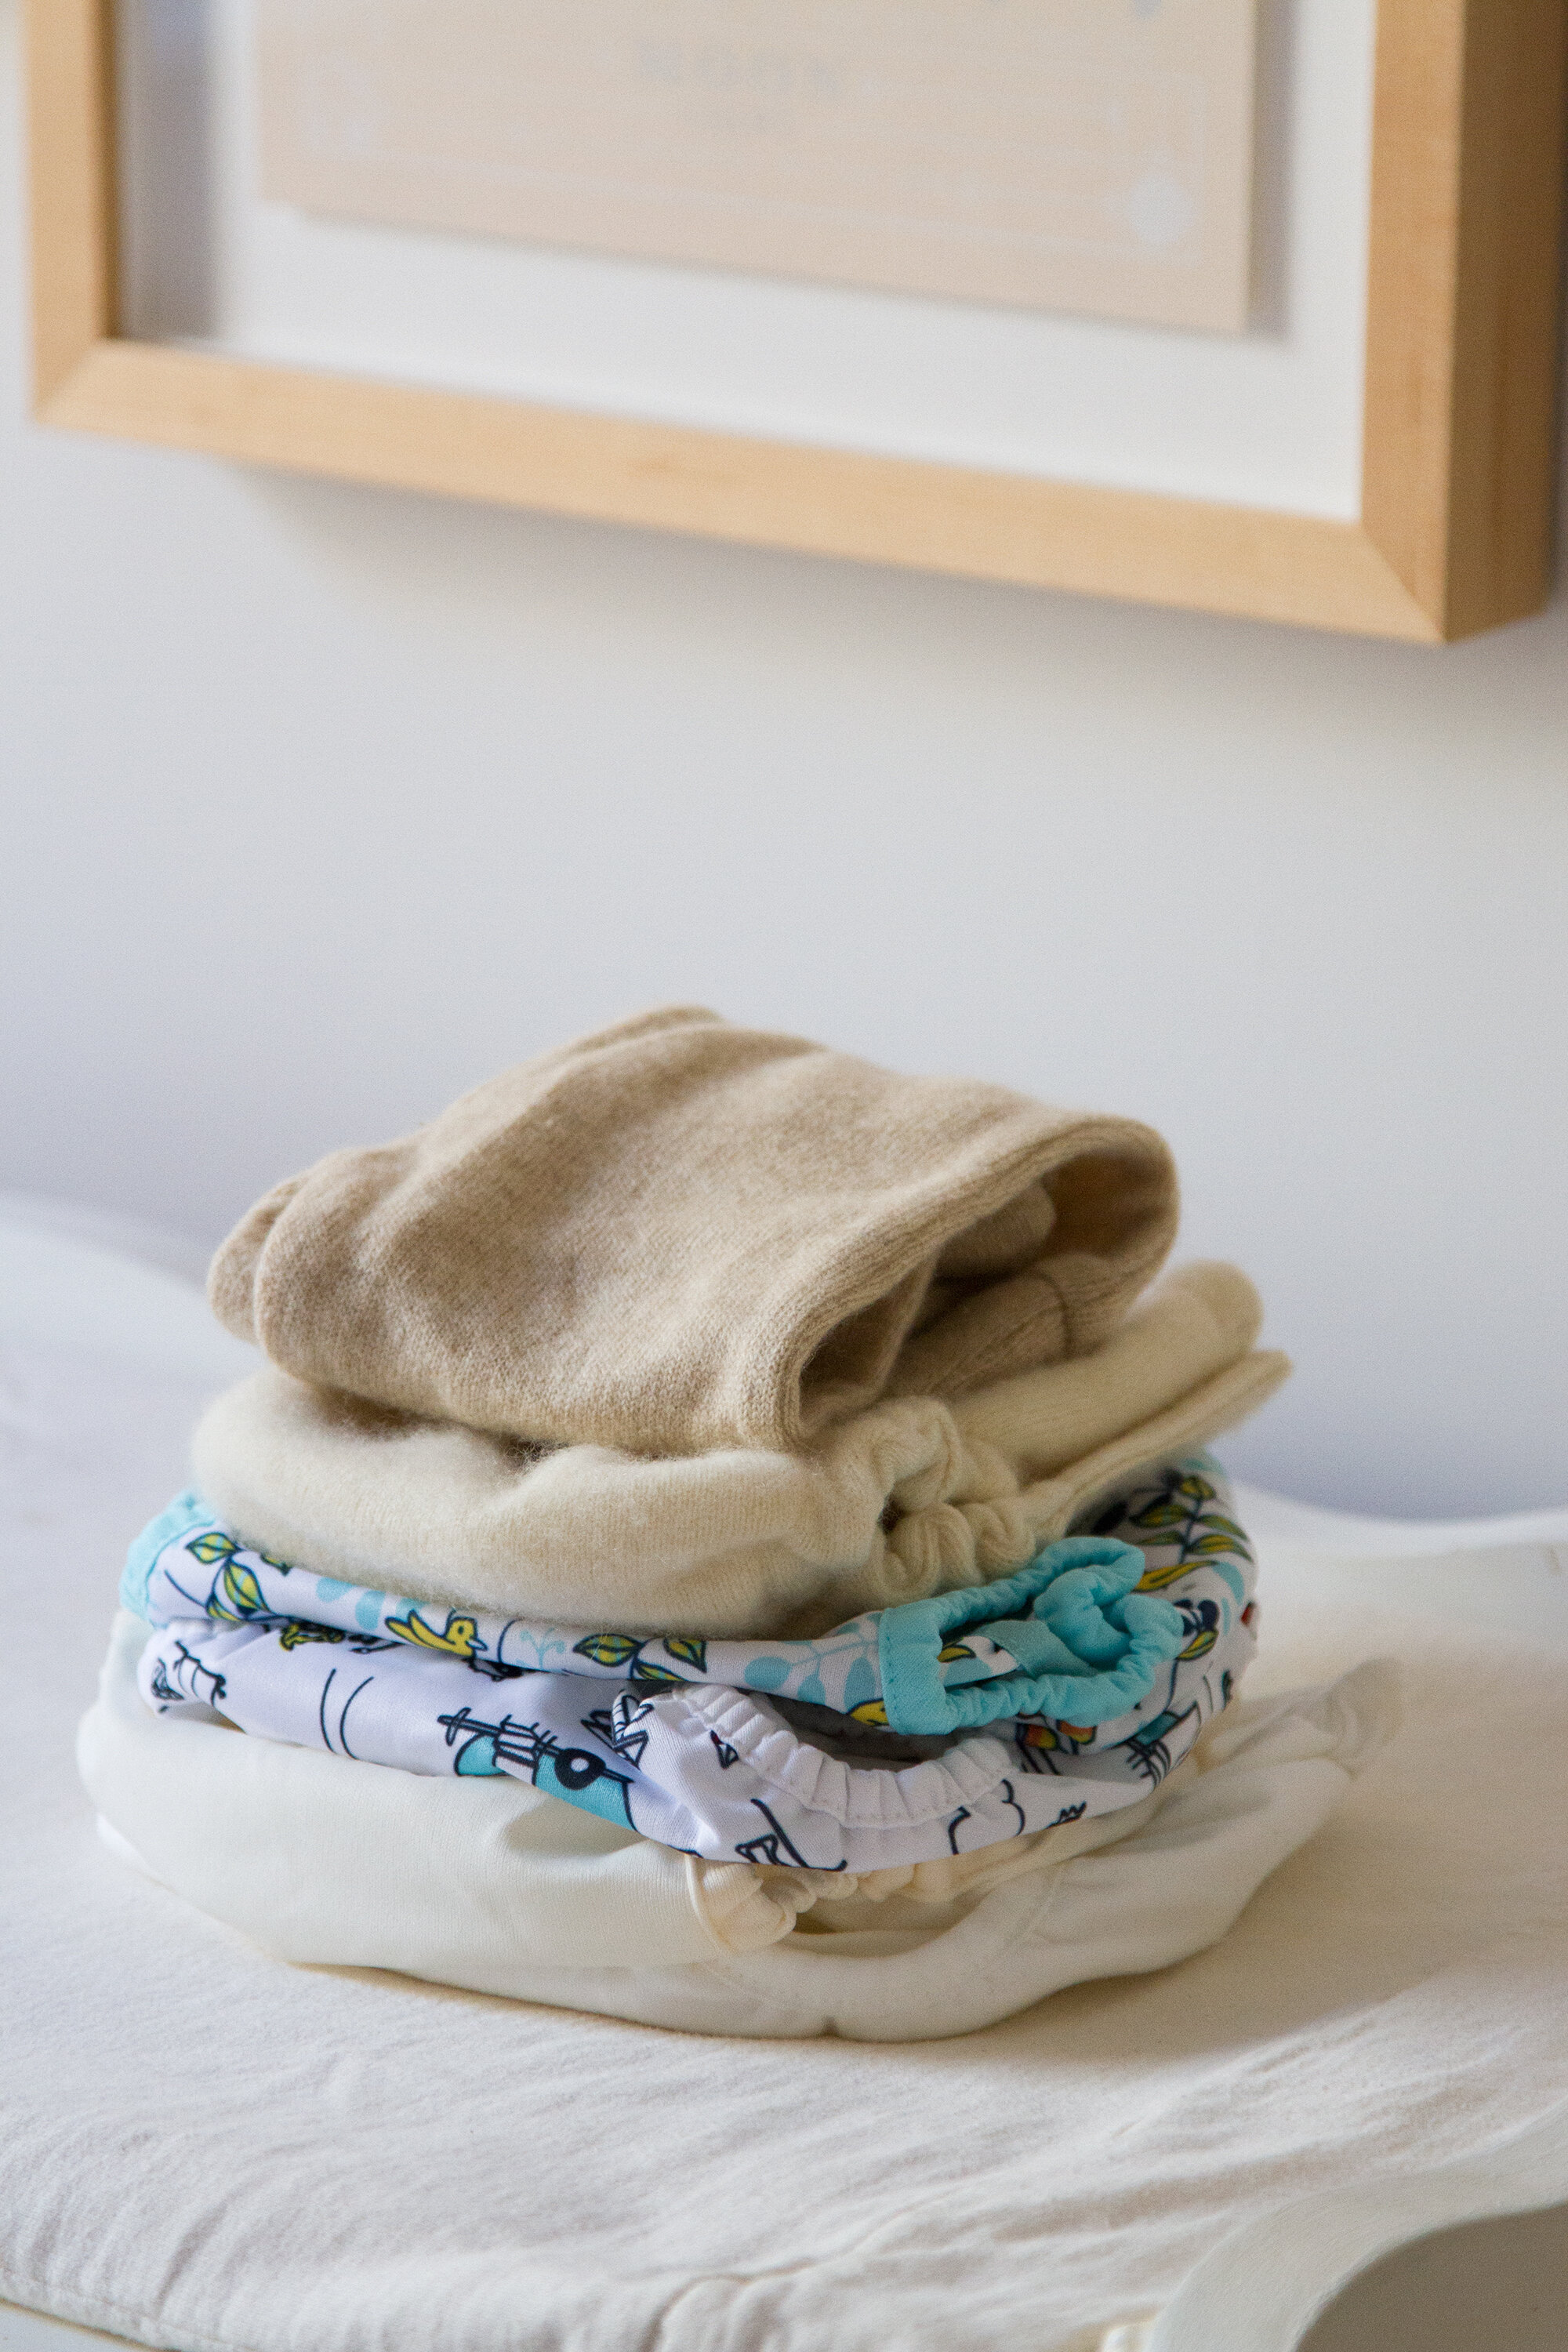 diaperkind cloth diaper service | reading my tea leaves